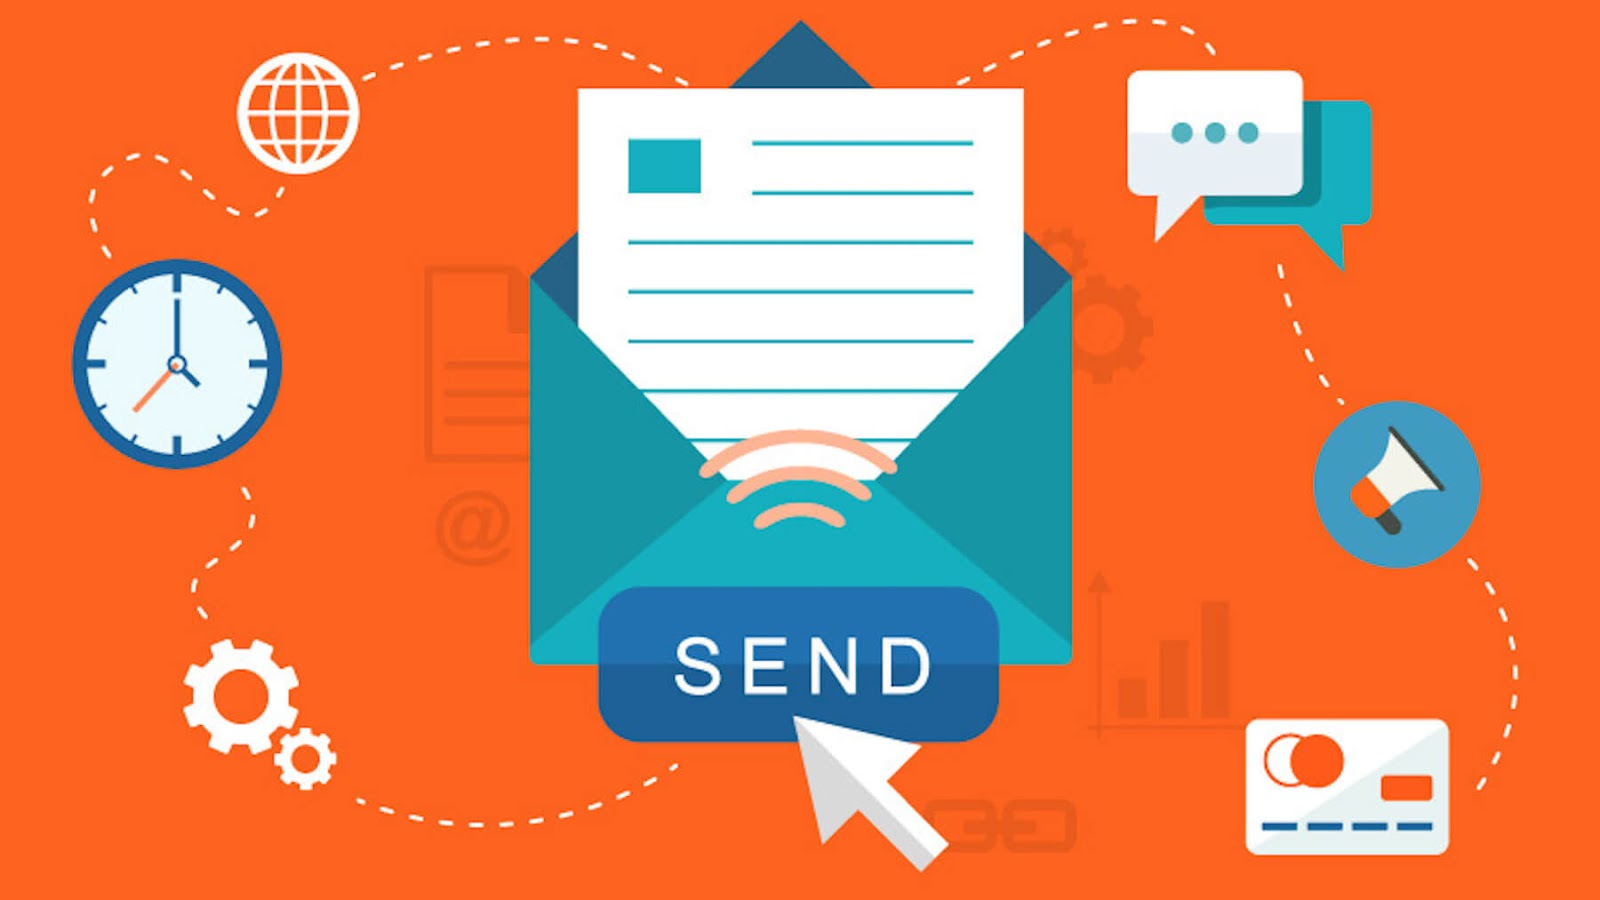 email send graphic